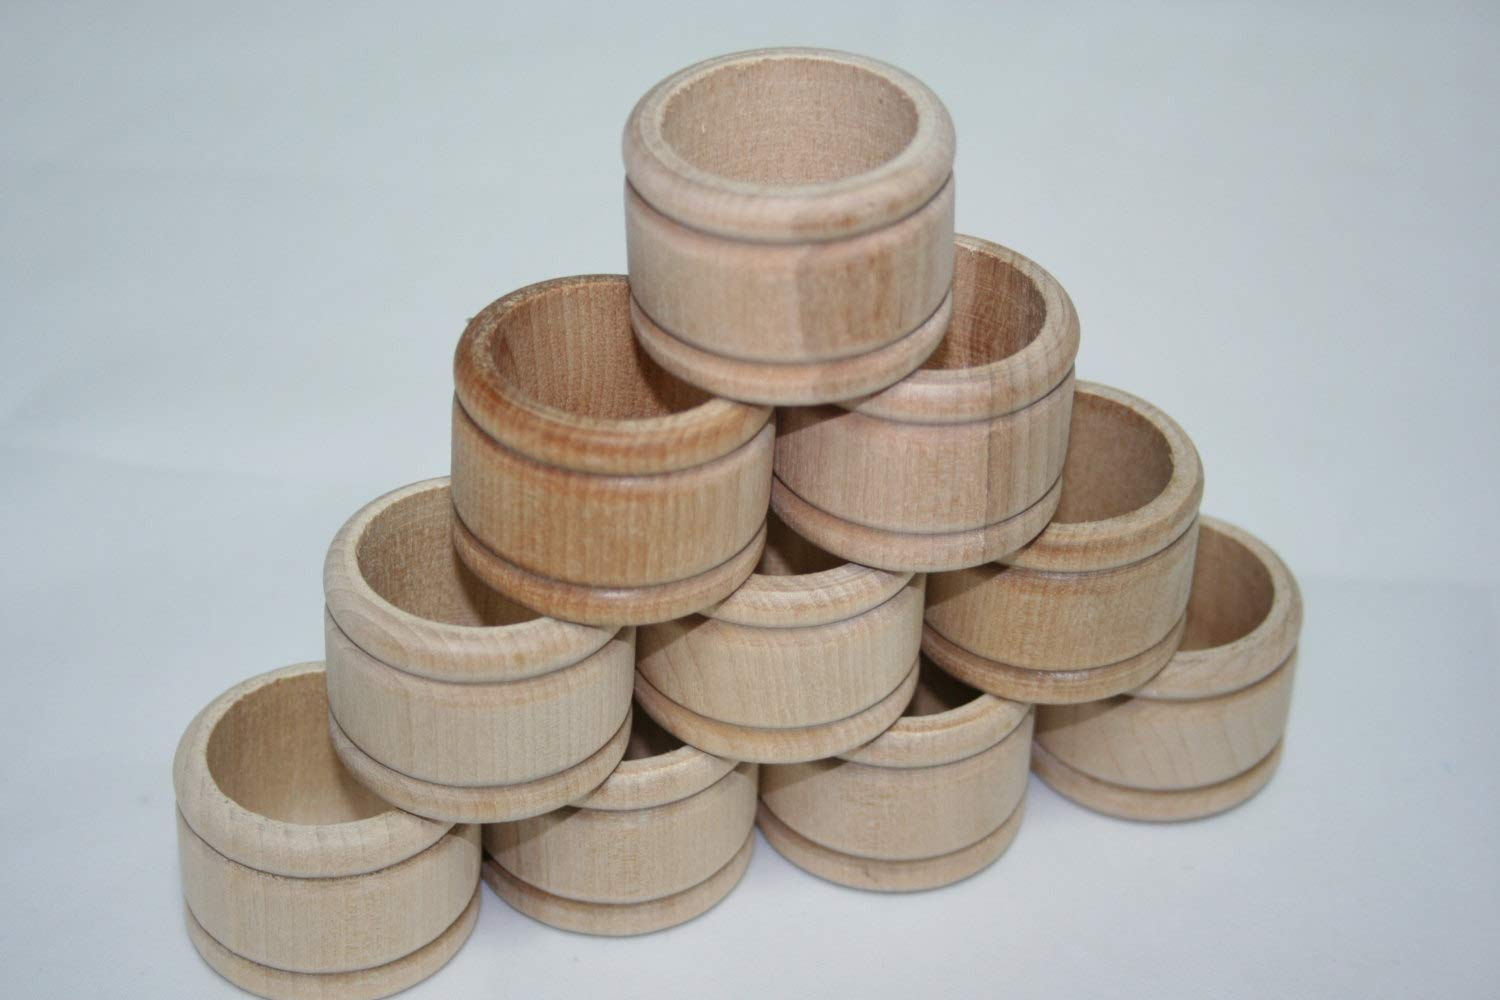 Colonial Style Napkin Maple Wood 50pcs Unfinished Wooden Napkin Ring Holder Table Setting Decor DIY Craft Supplies by Hobknobin DIY Wooden Napkin Rings Choose Your Qty n Save